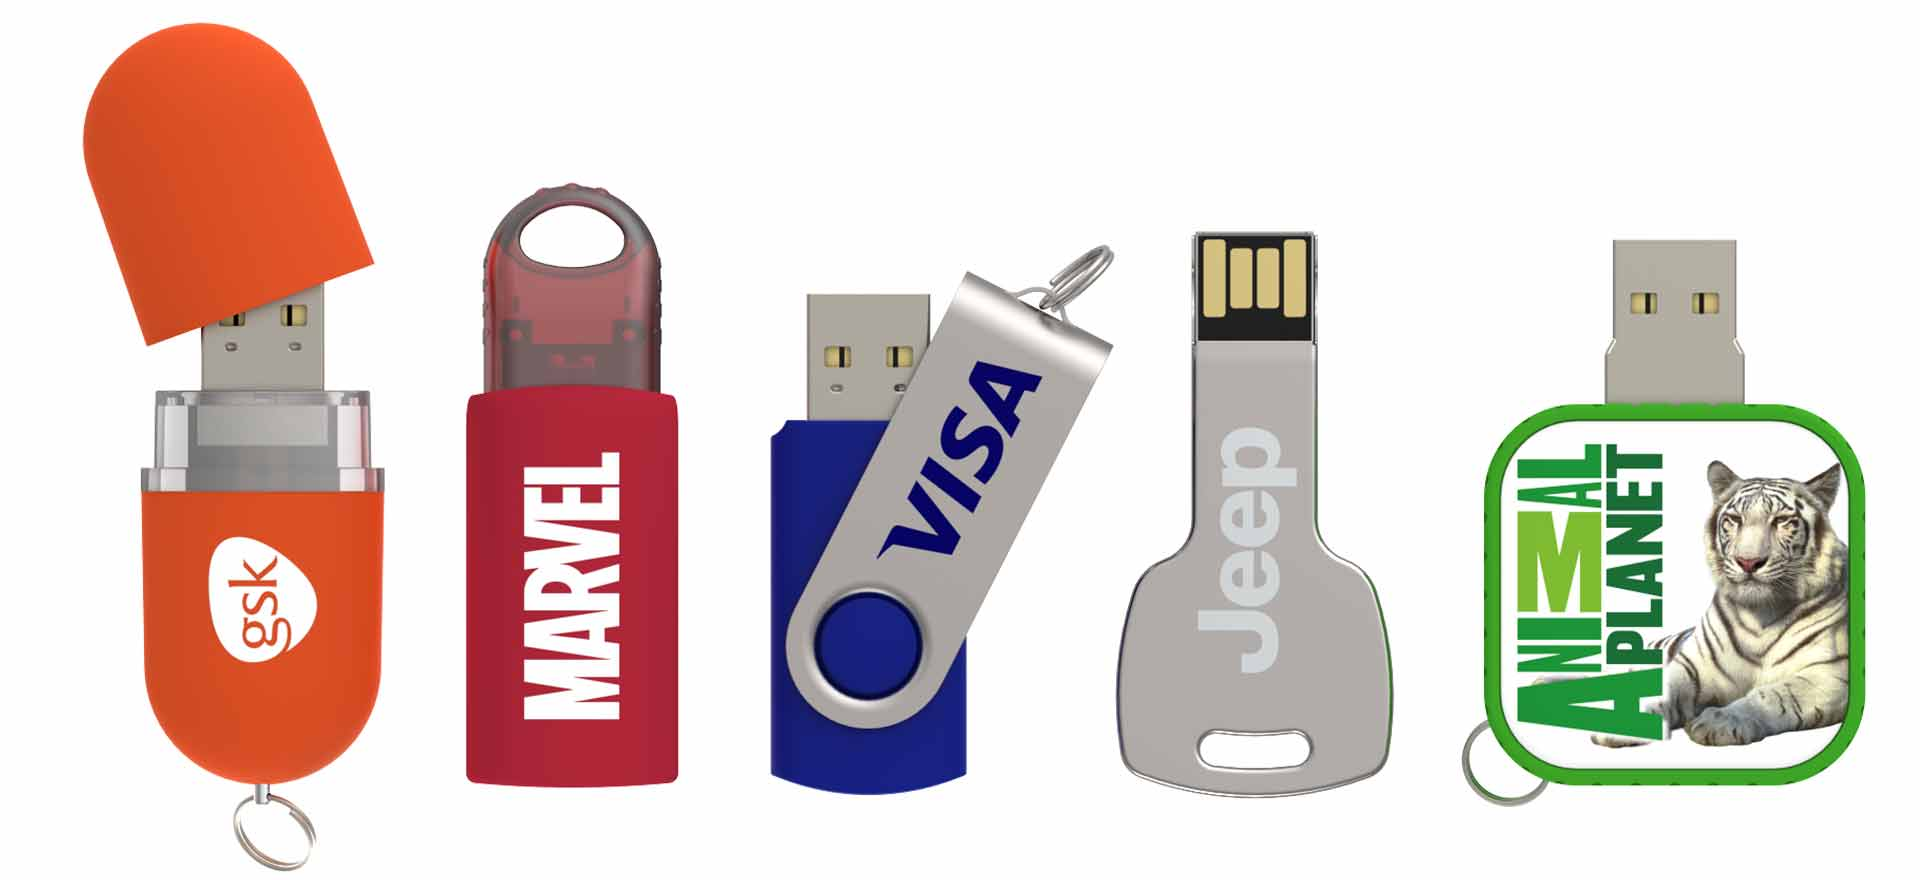 USB Flash Drives in 5 Days!